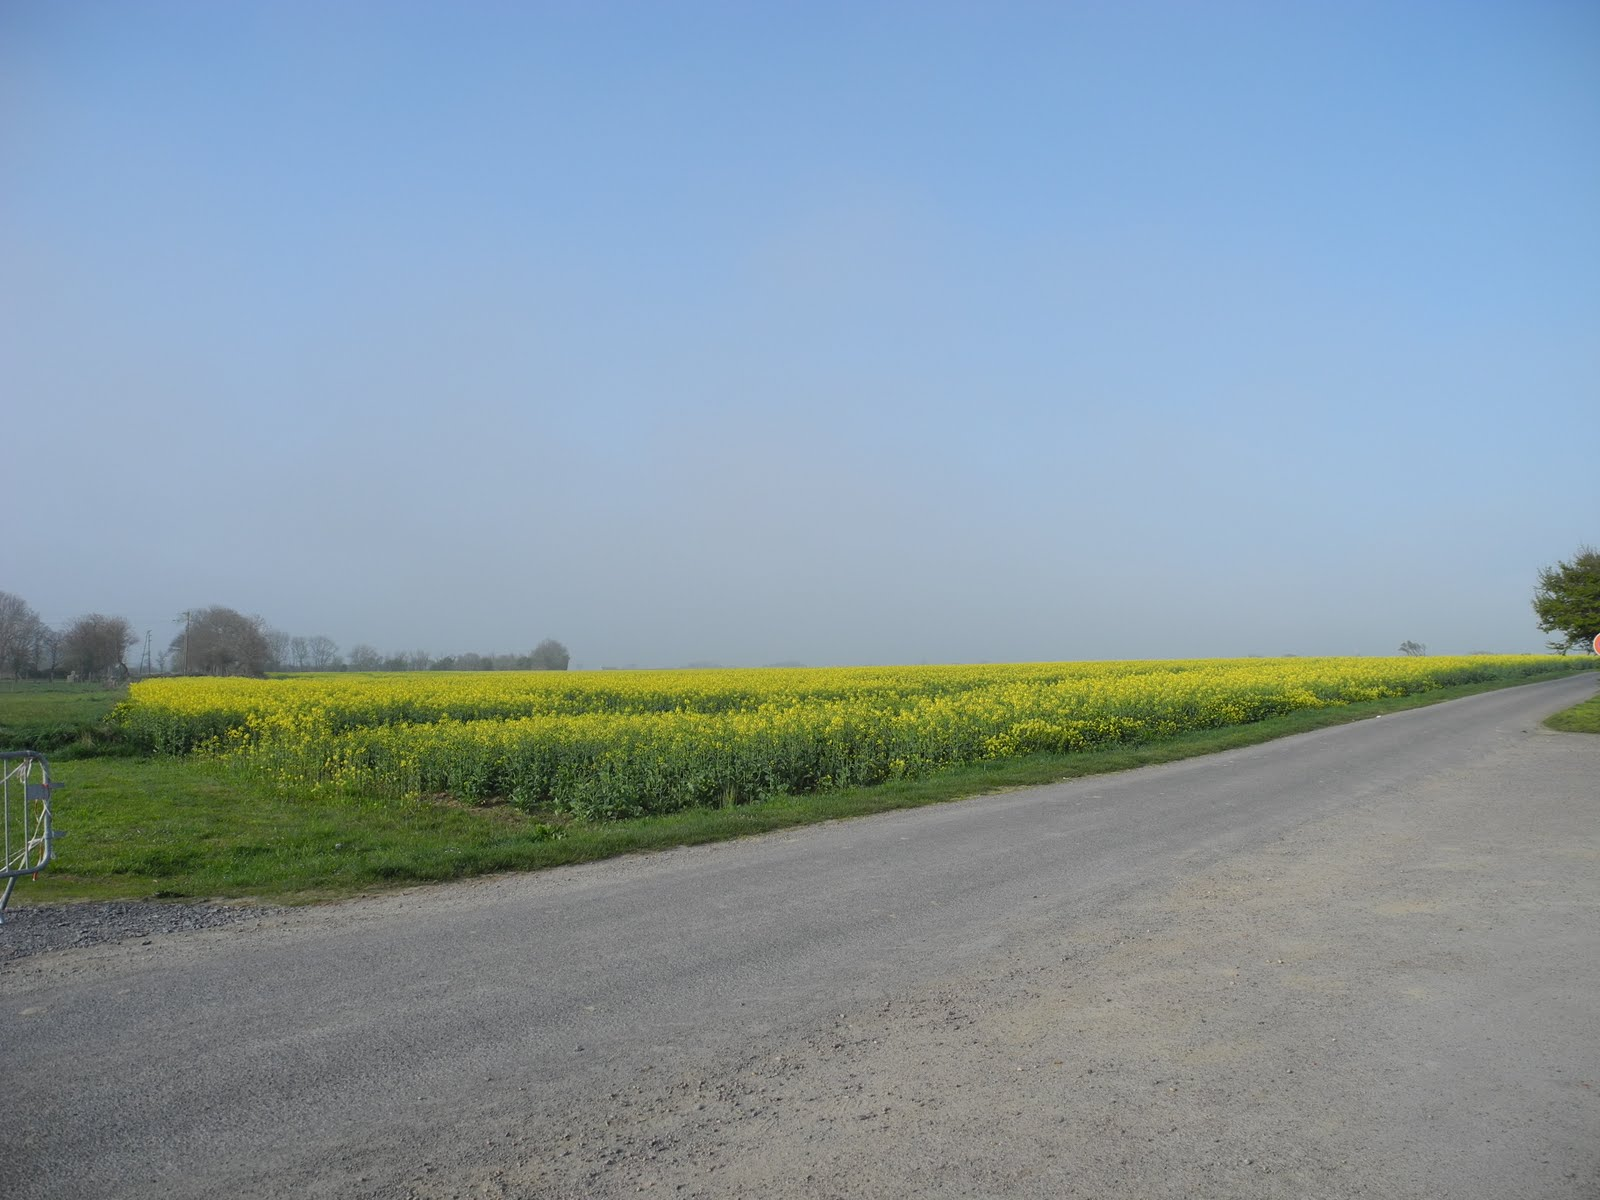 Just Allez On The Way To Normandy What Are Those Yellow Flowers